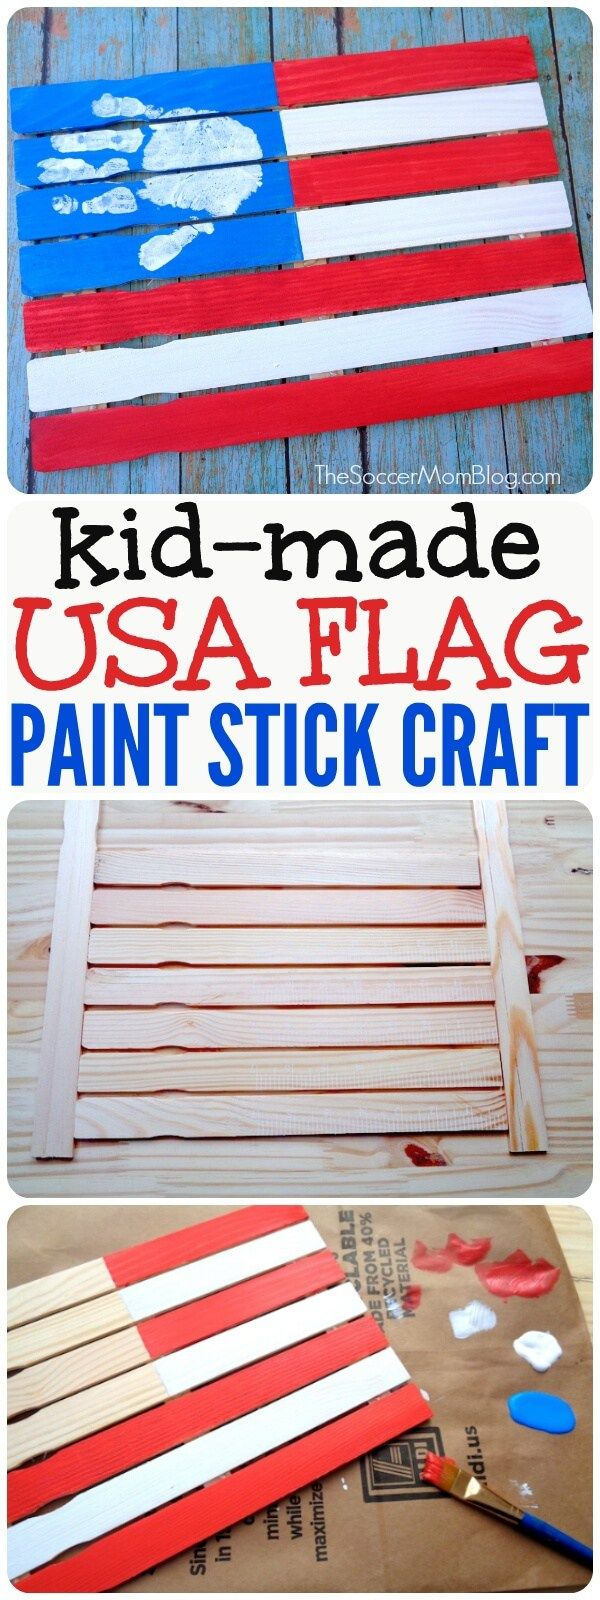 8602f71e0104 This Wooden American Flag is an easy kids craft that adds an special touch  to holiday decor. Makes an adorable keepsake gifts for family   friends!